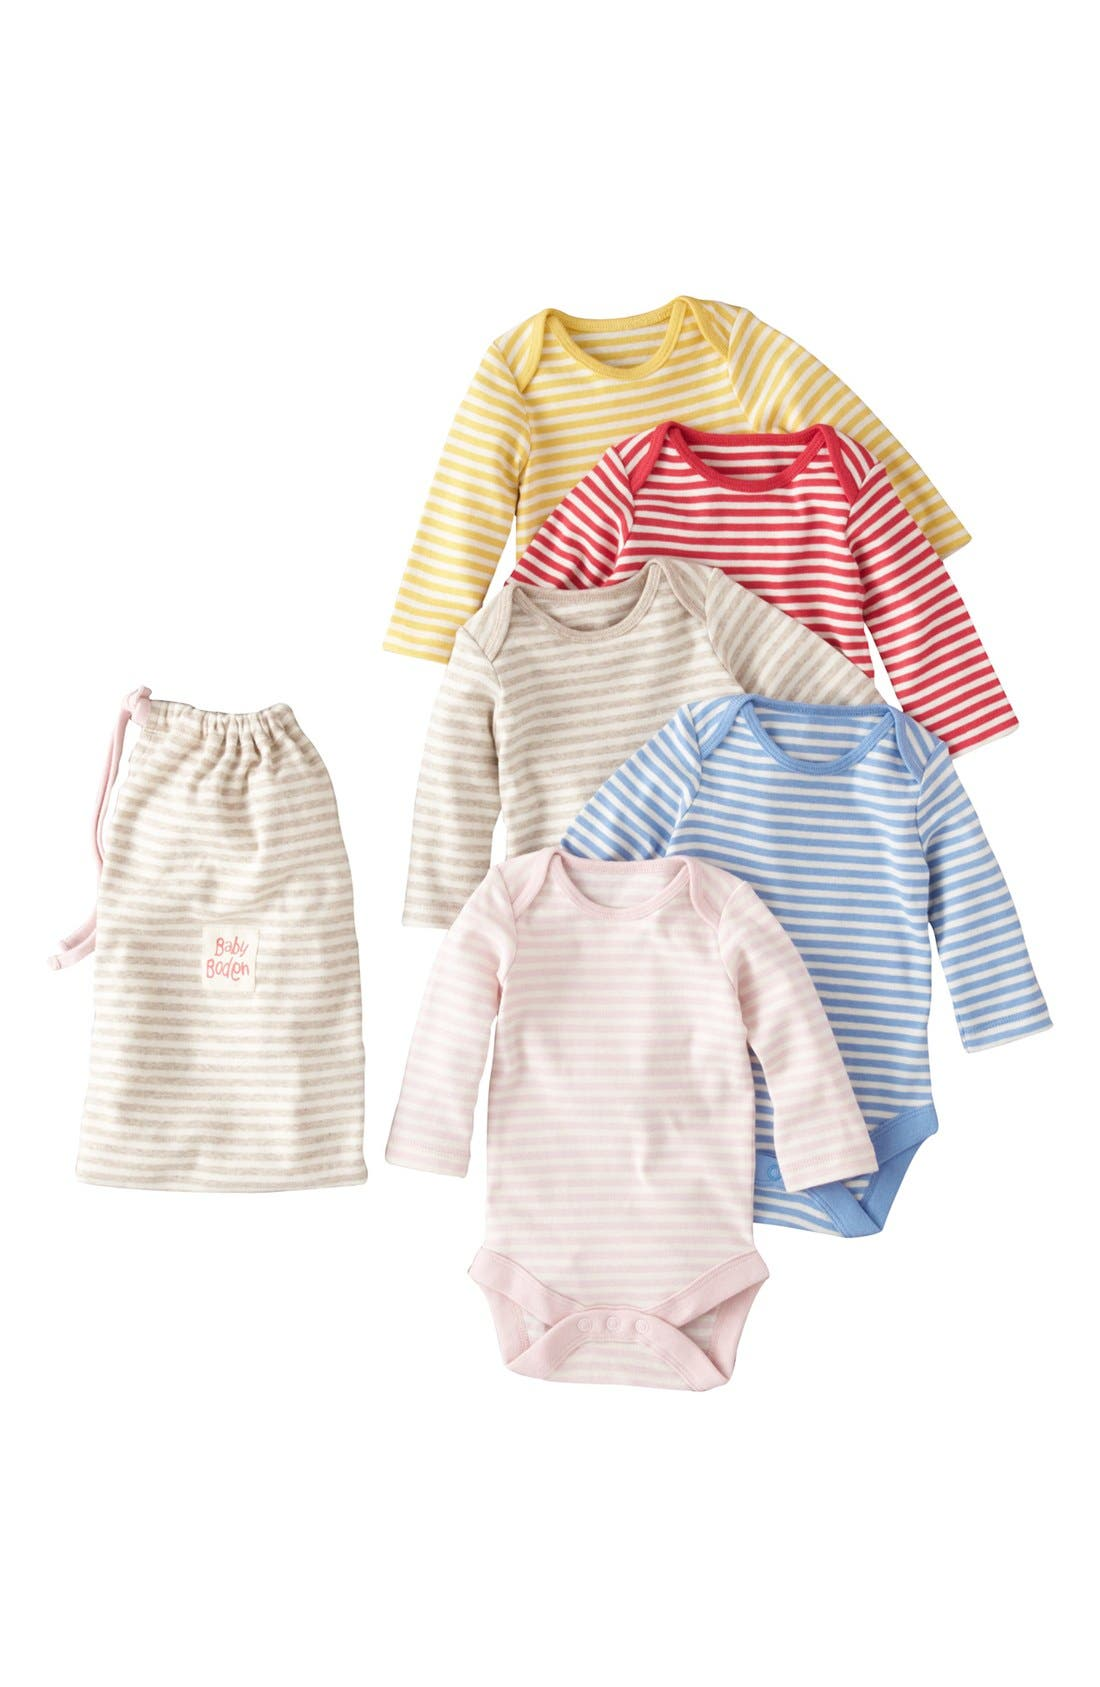 Main Image - Mini Boden Bodysuits (5-Pack) (Baby Girls)